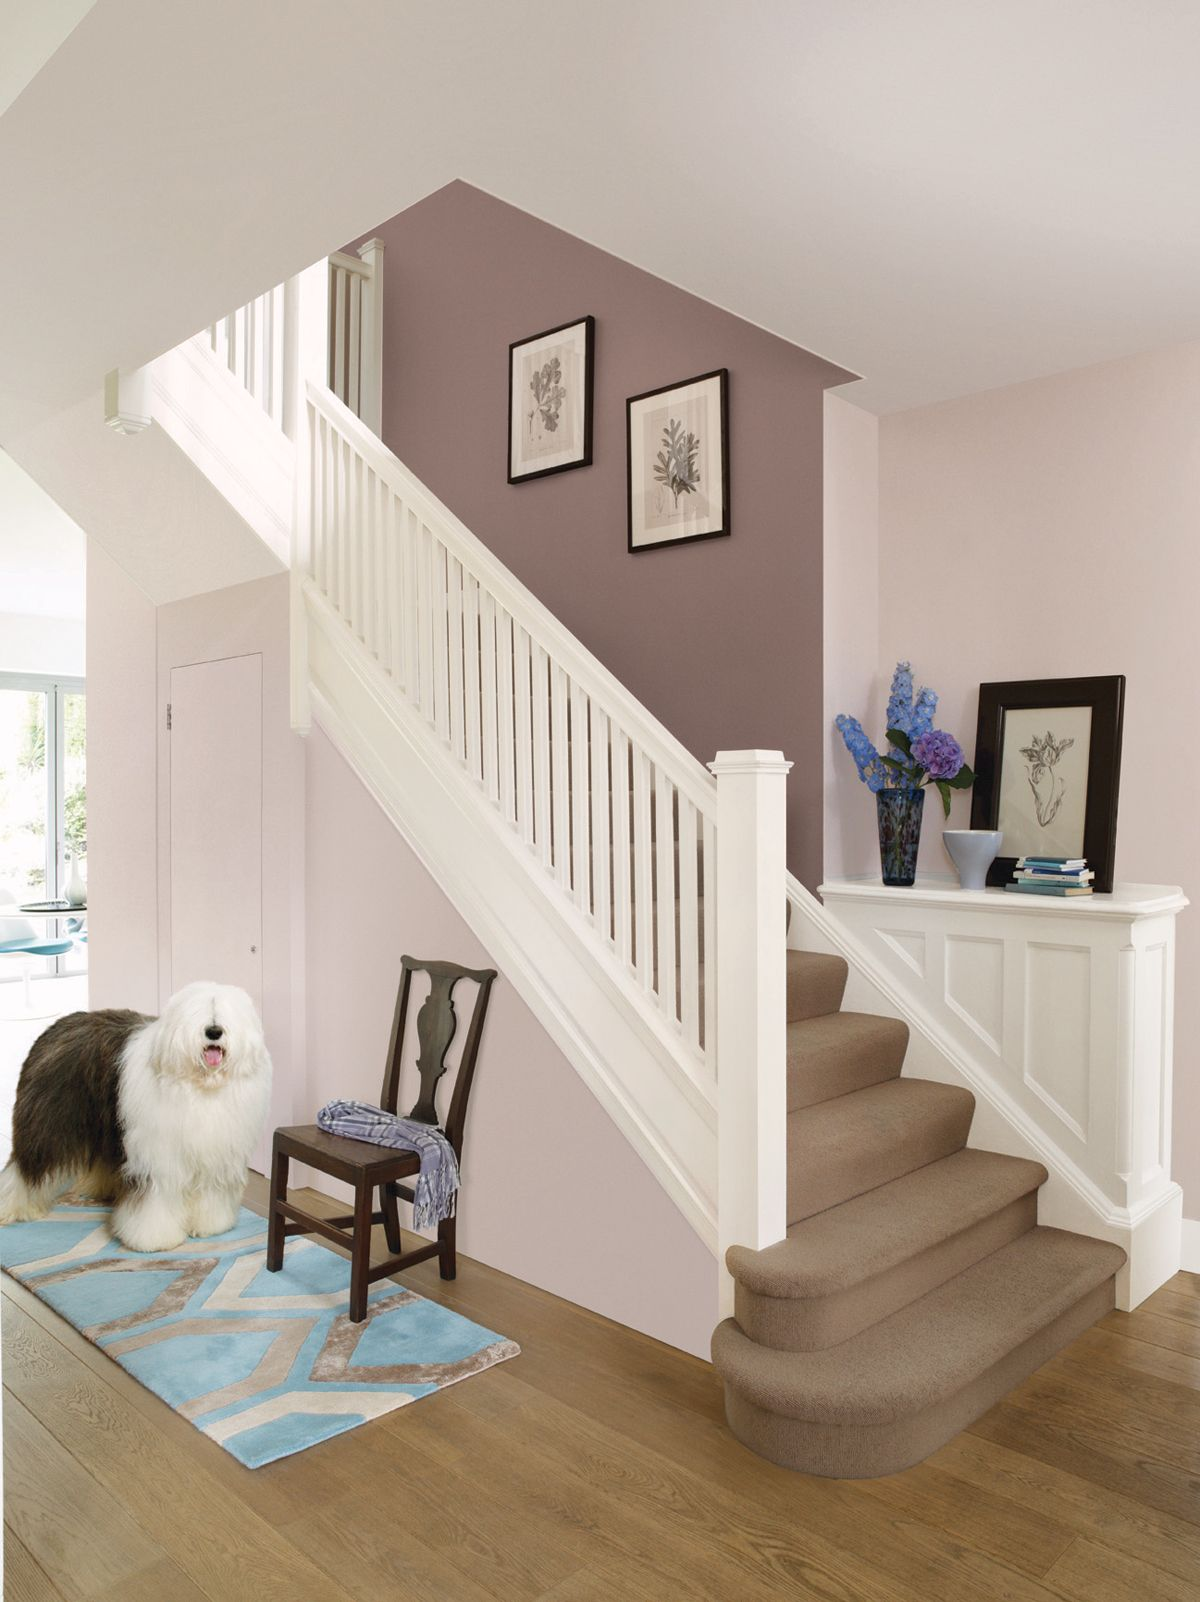 Dulux Wall Paint Design : Dulux potters wheel paint with jasmine white rooms